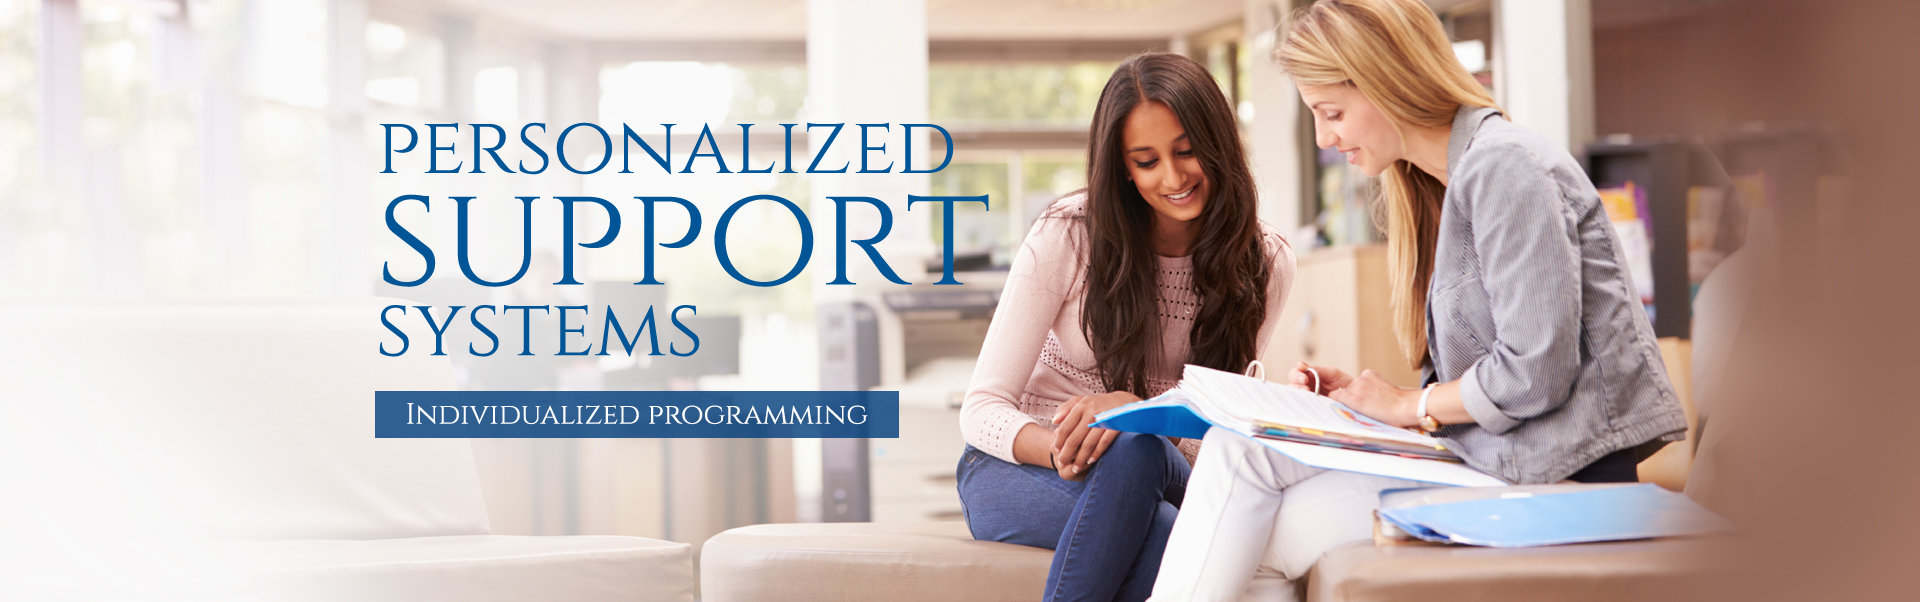 We offer personalized support systems.